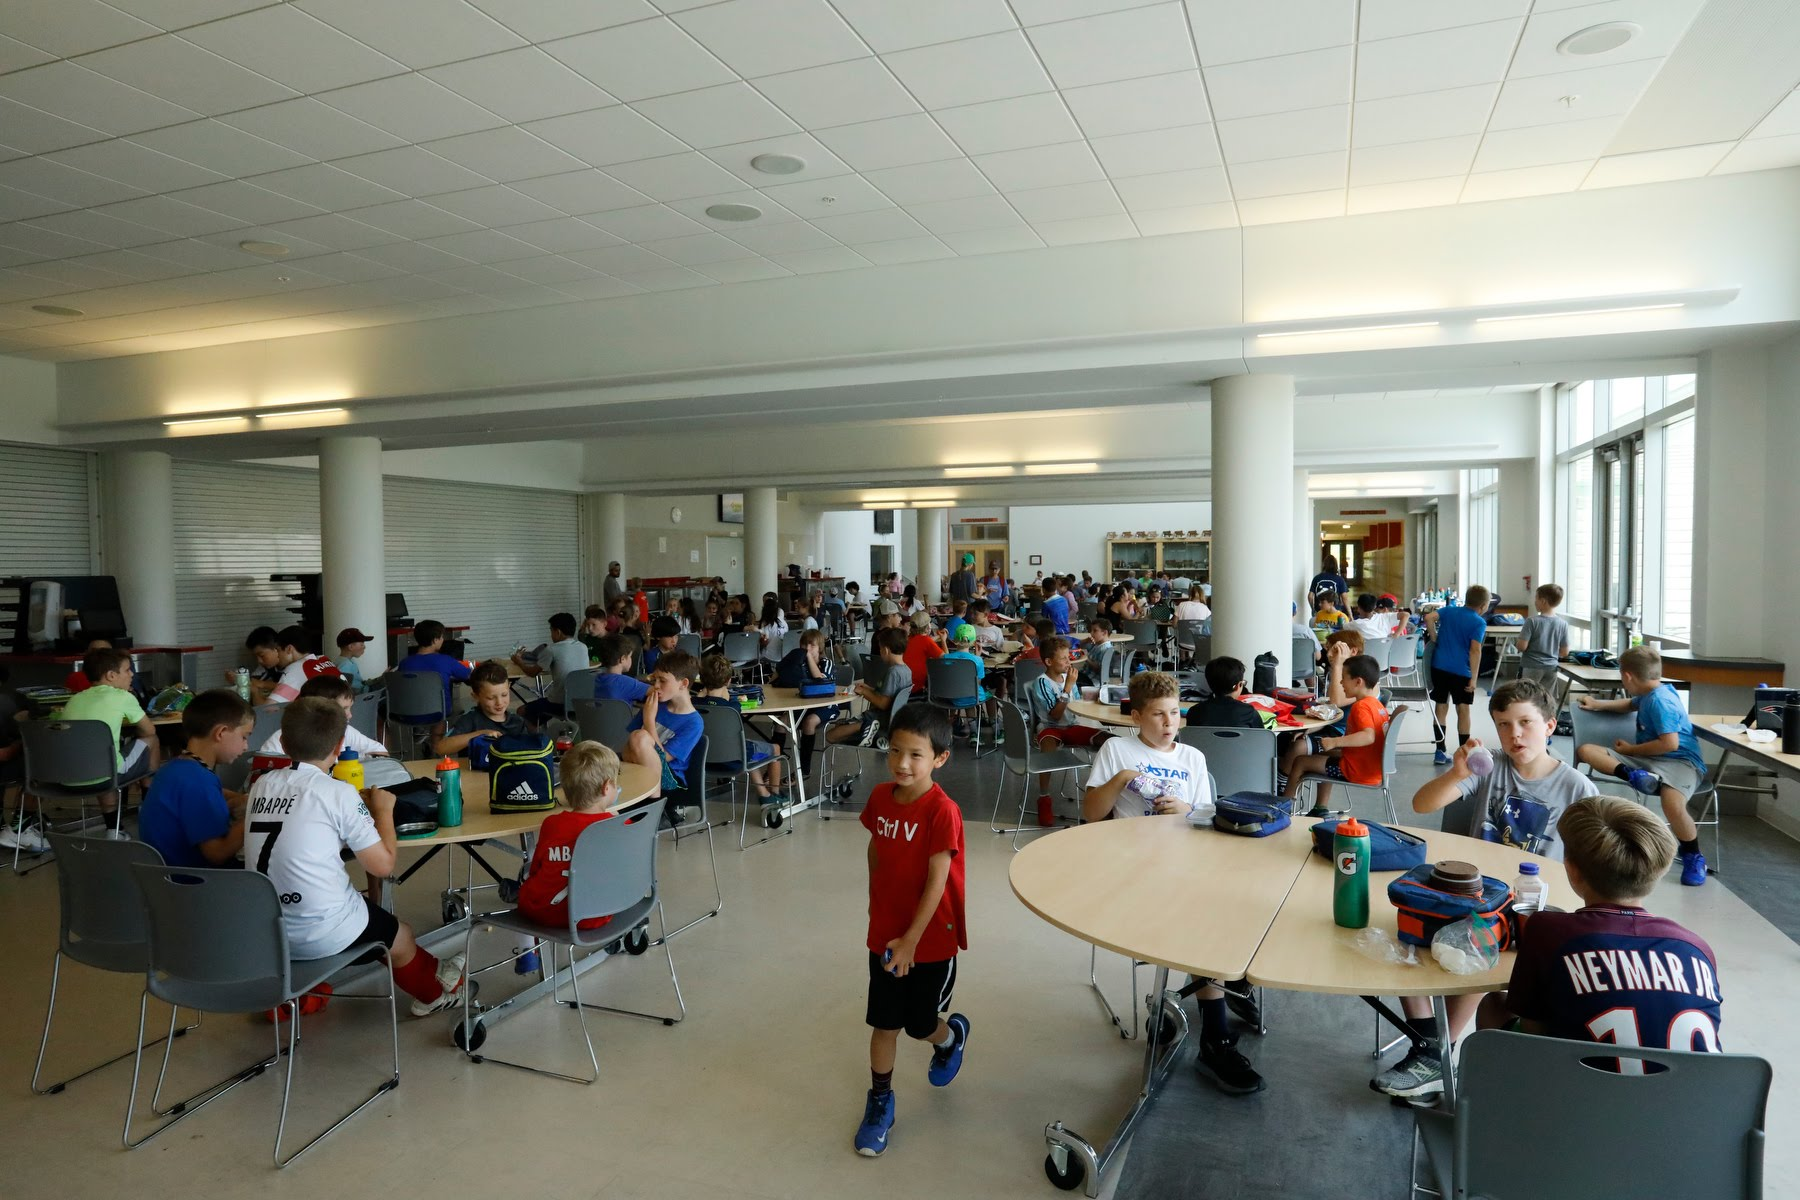 Large air-conditioned indoor gathering spaces